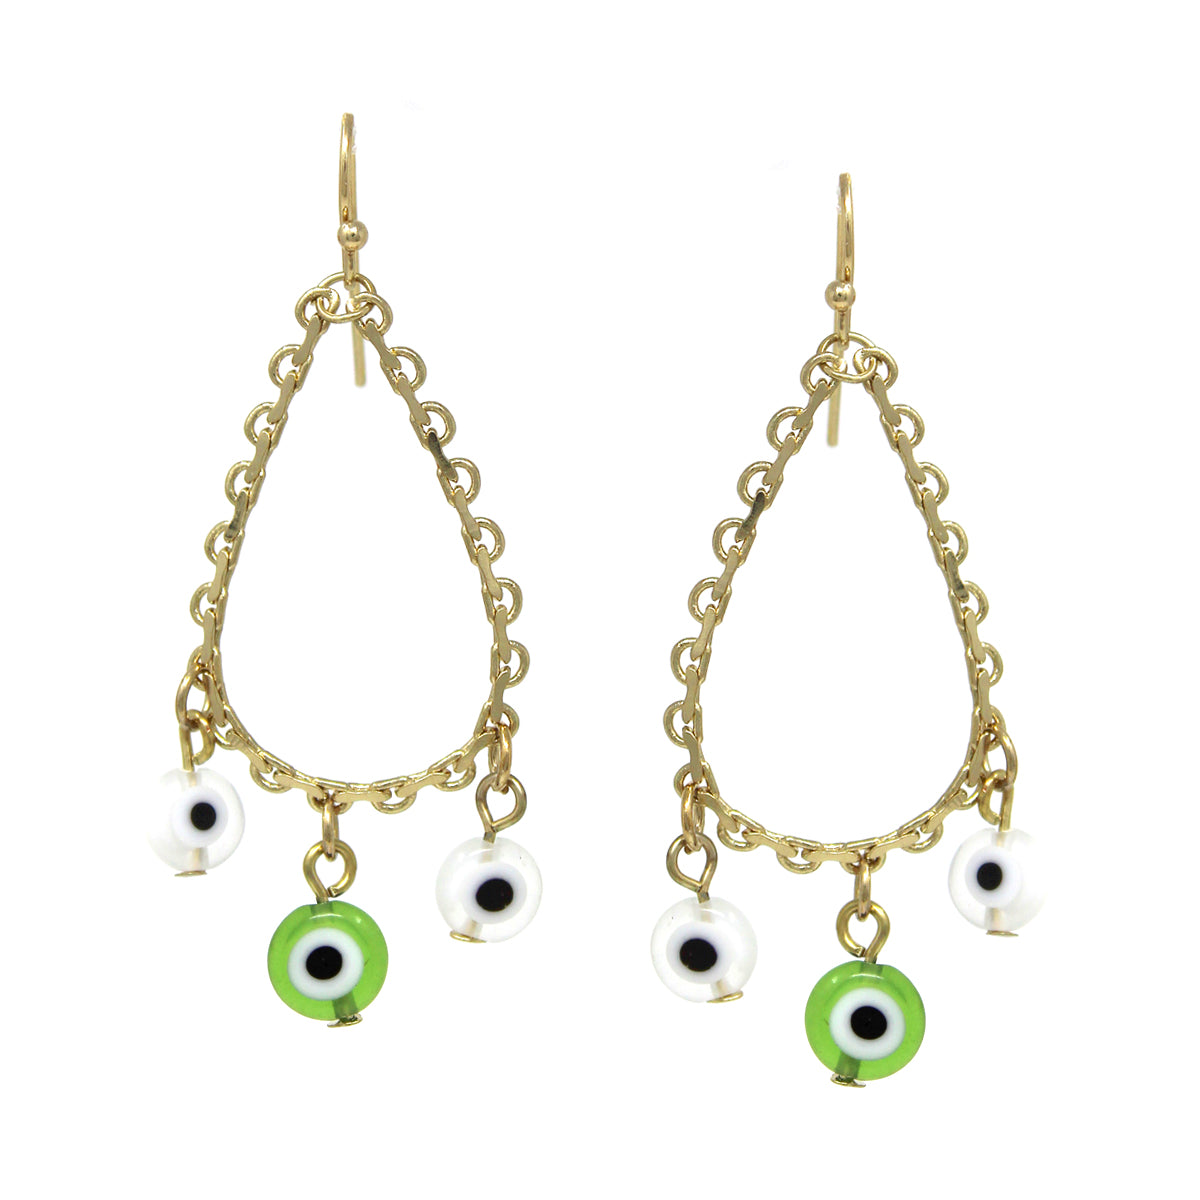 Teardrop Chain Evil Eye Fringe Earrings